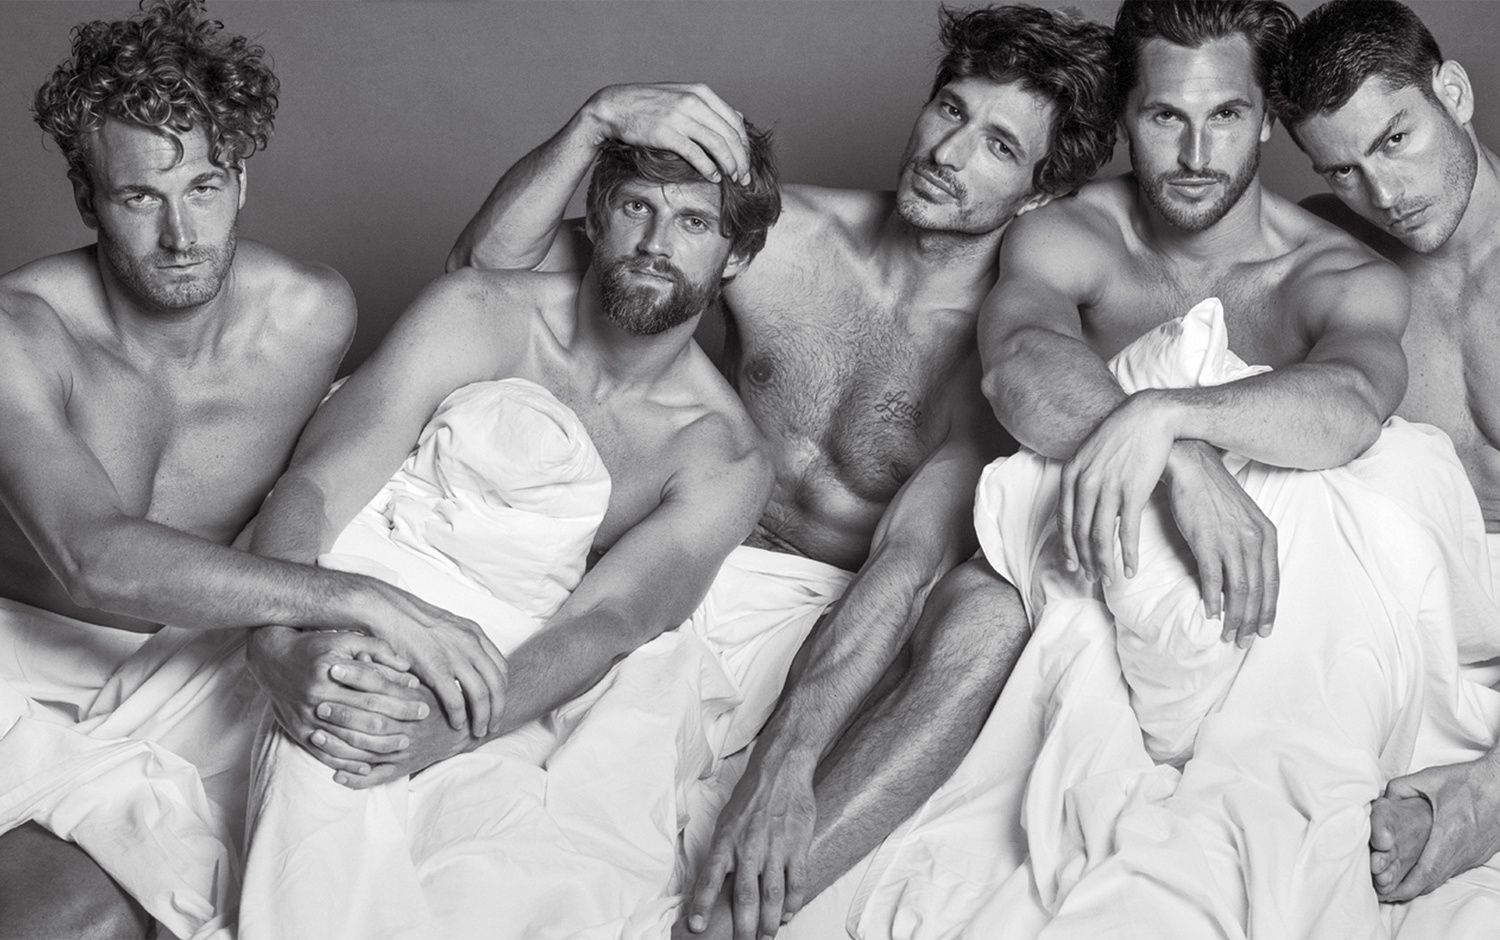 The Grand Reunion by Bruce Weber